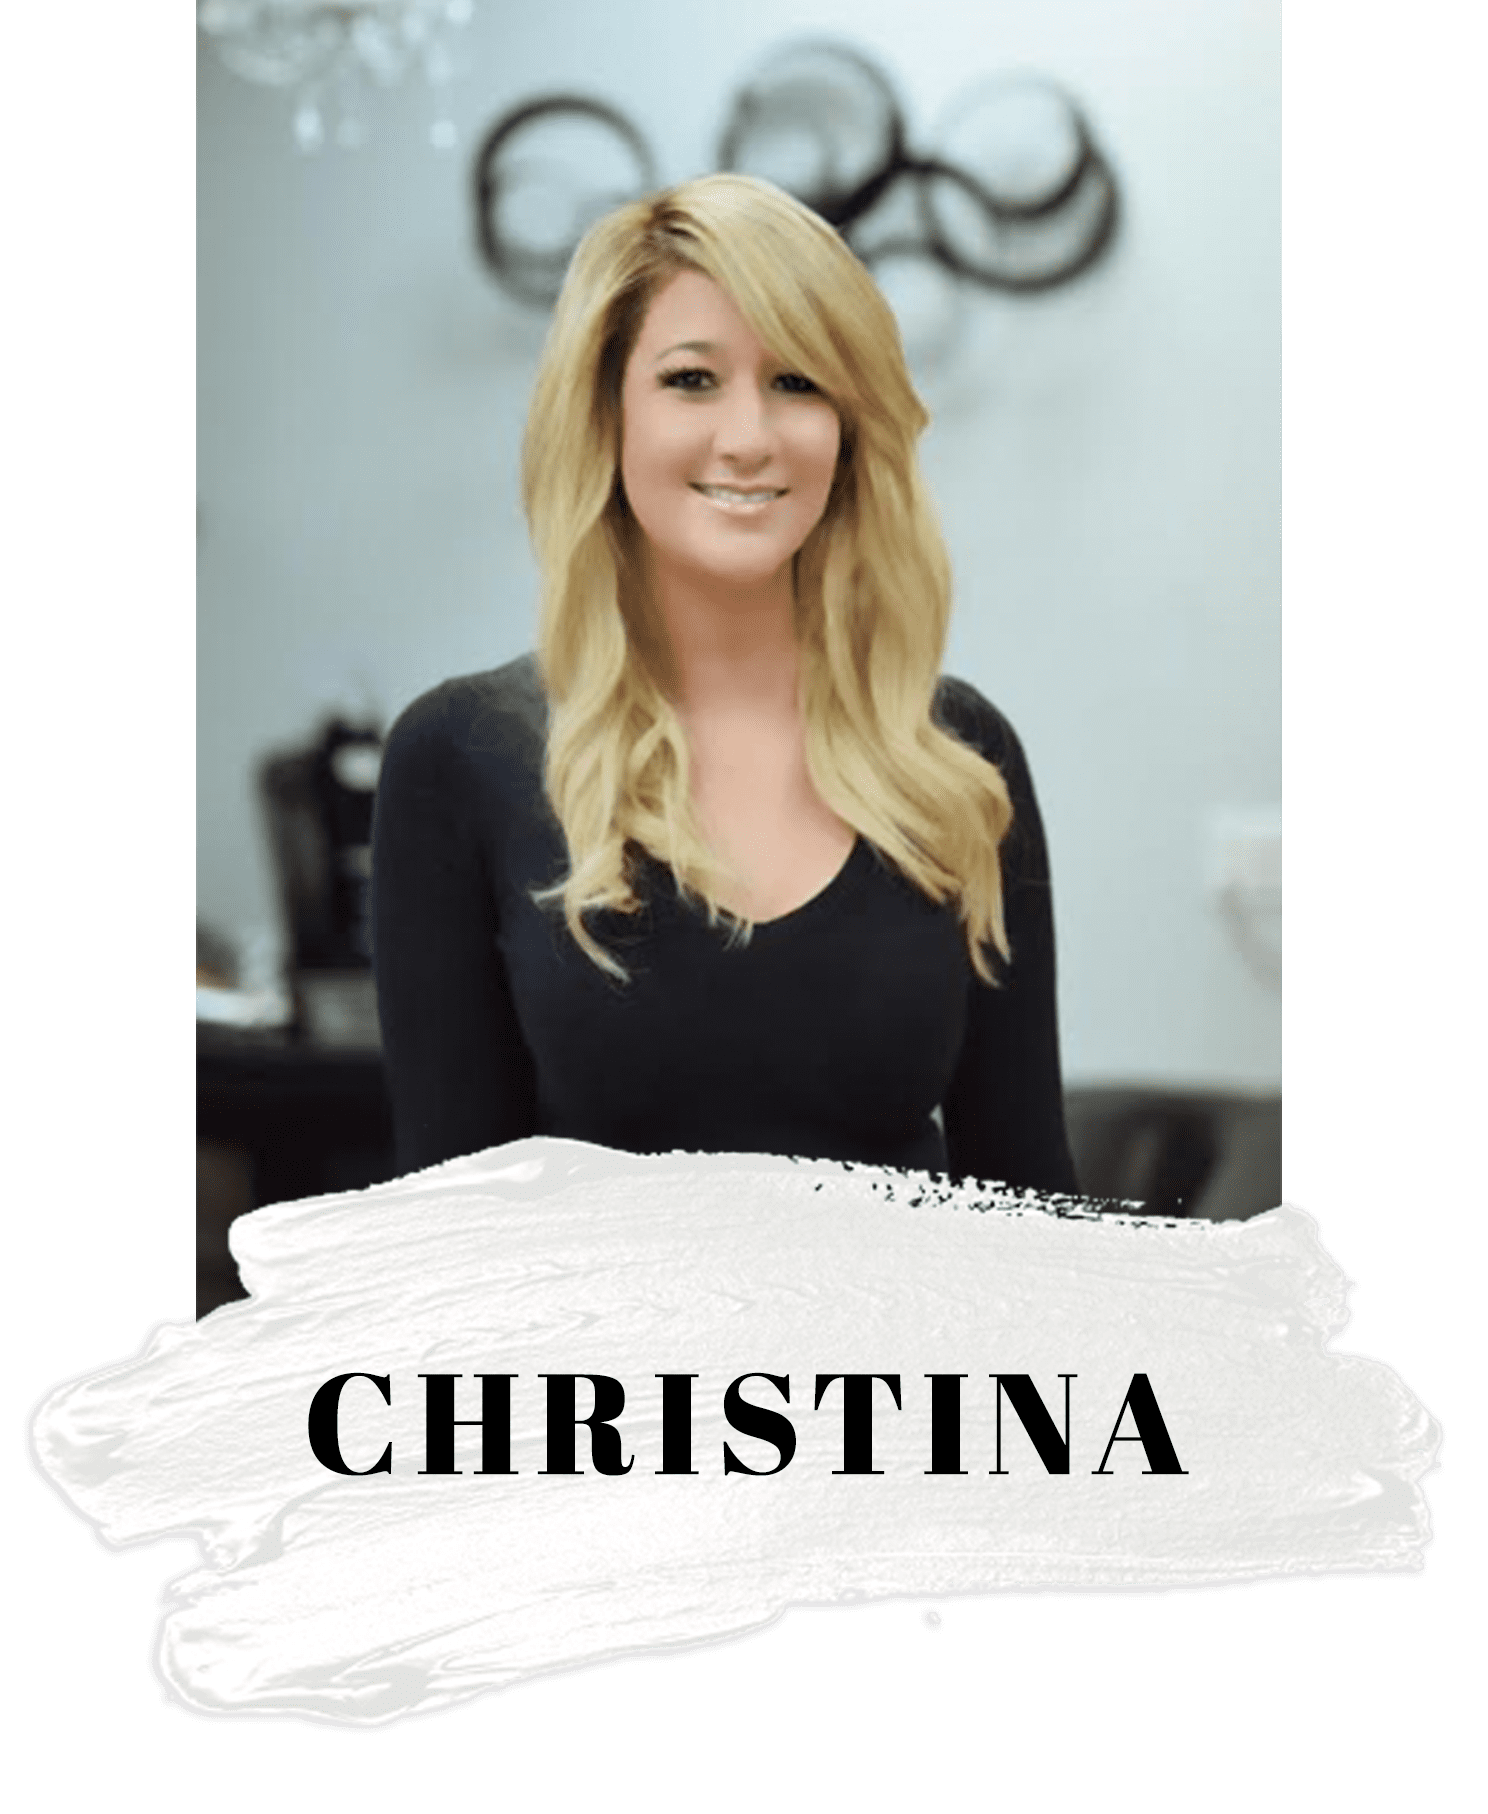 Christina, Blondes, Blonde Specialist, Color Correction, Phily's Cuts, Stylist, Hair Salon